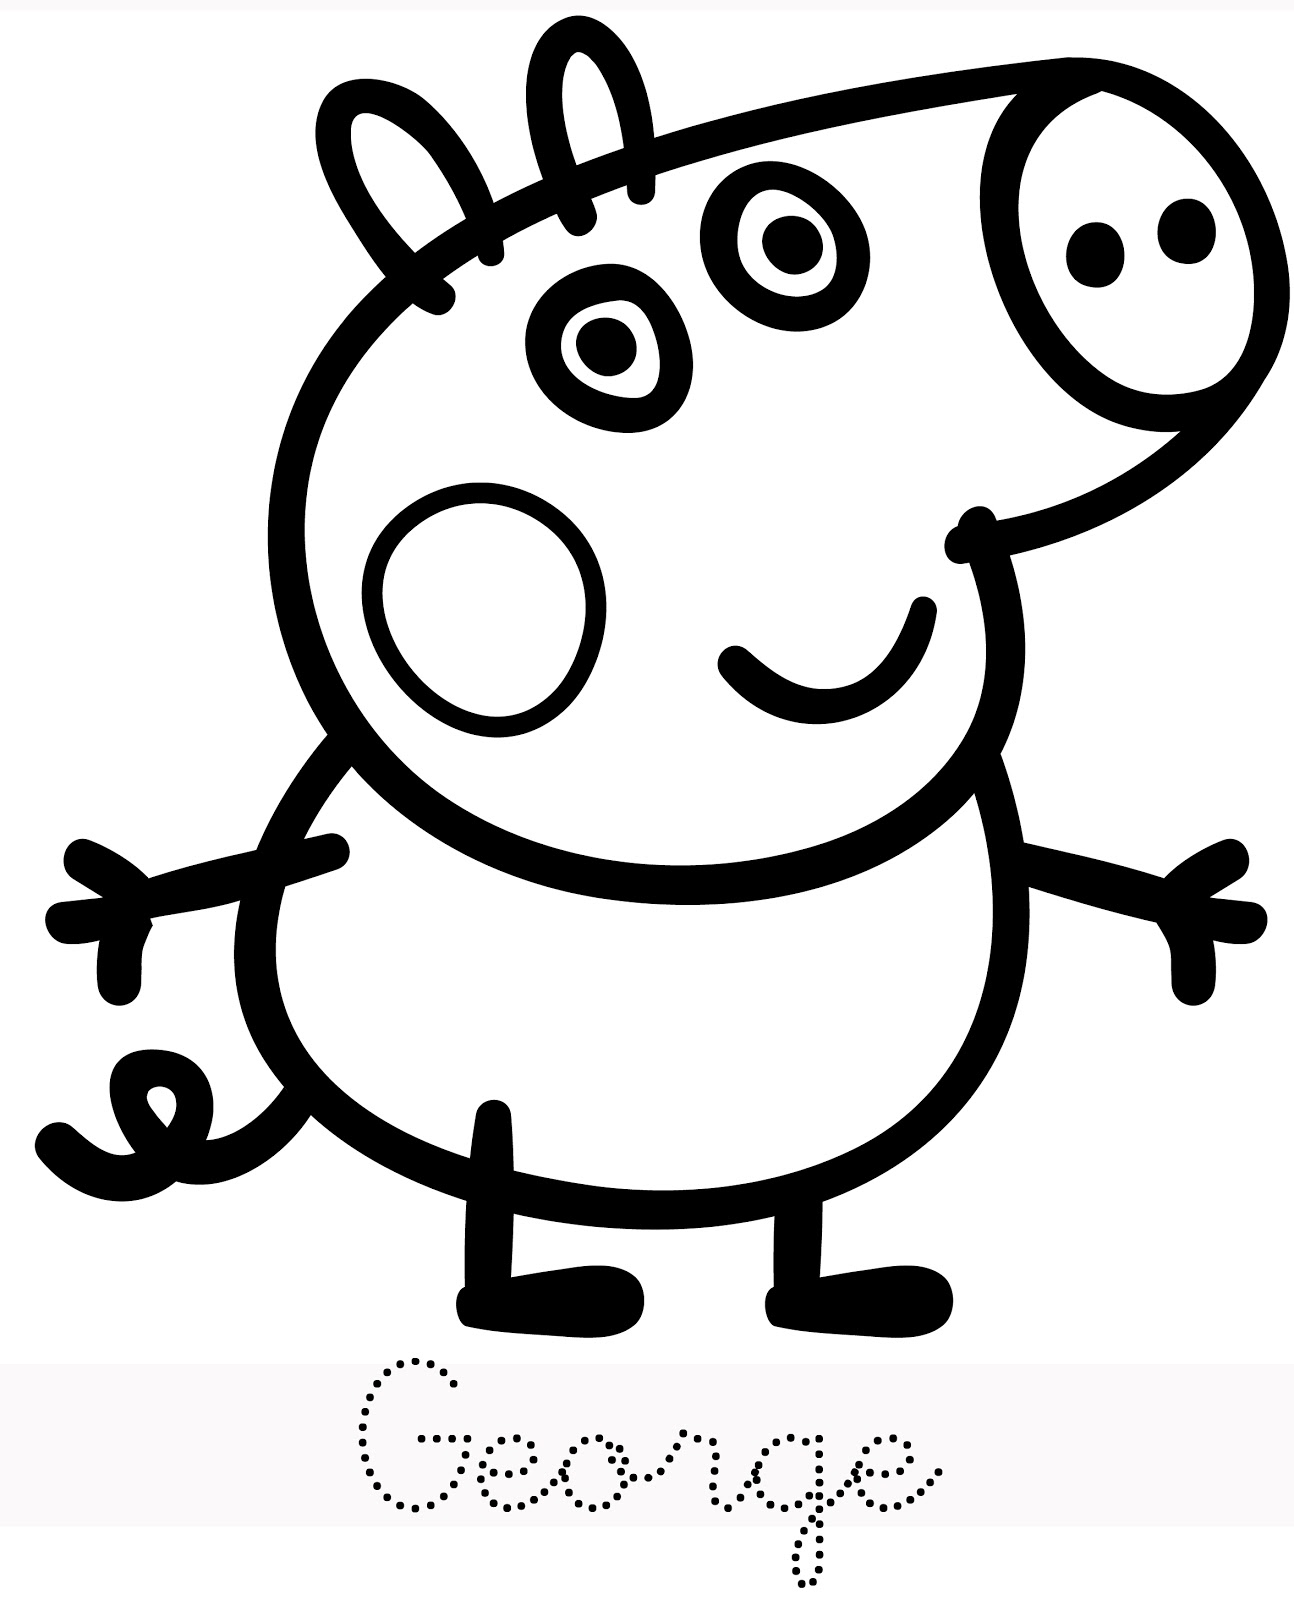 Pig Cartoon Drawing at GetDrawings.com | Free for personal use Pig ...